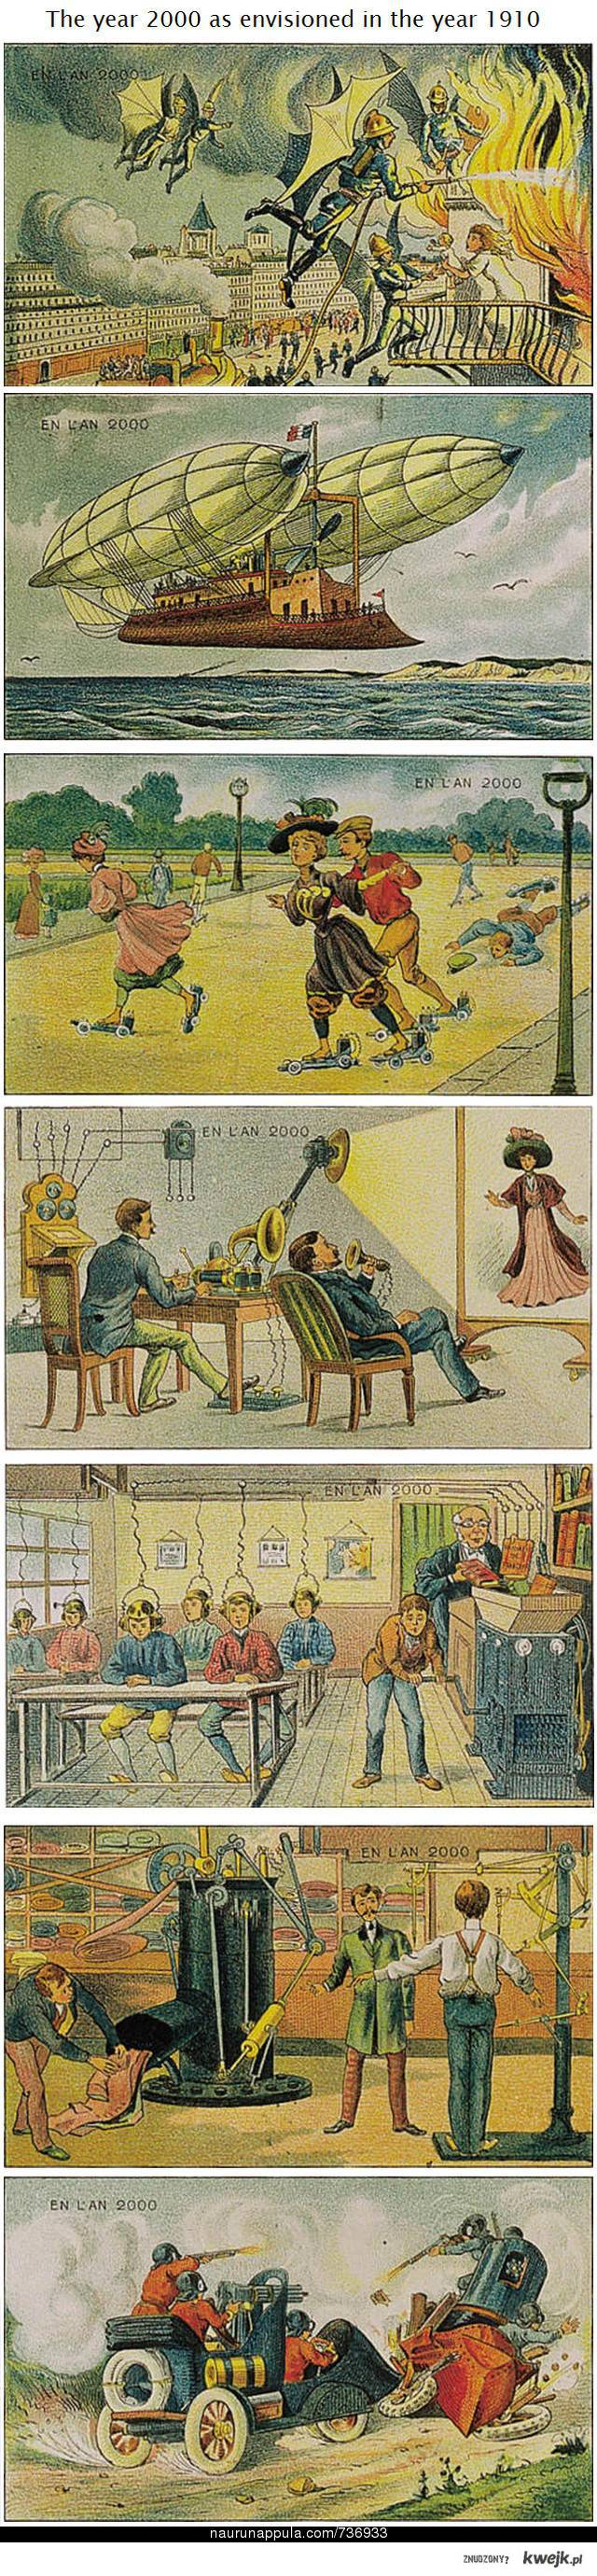 the year 2000 as envisioned in the year 1900